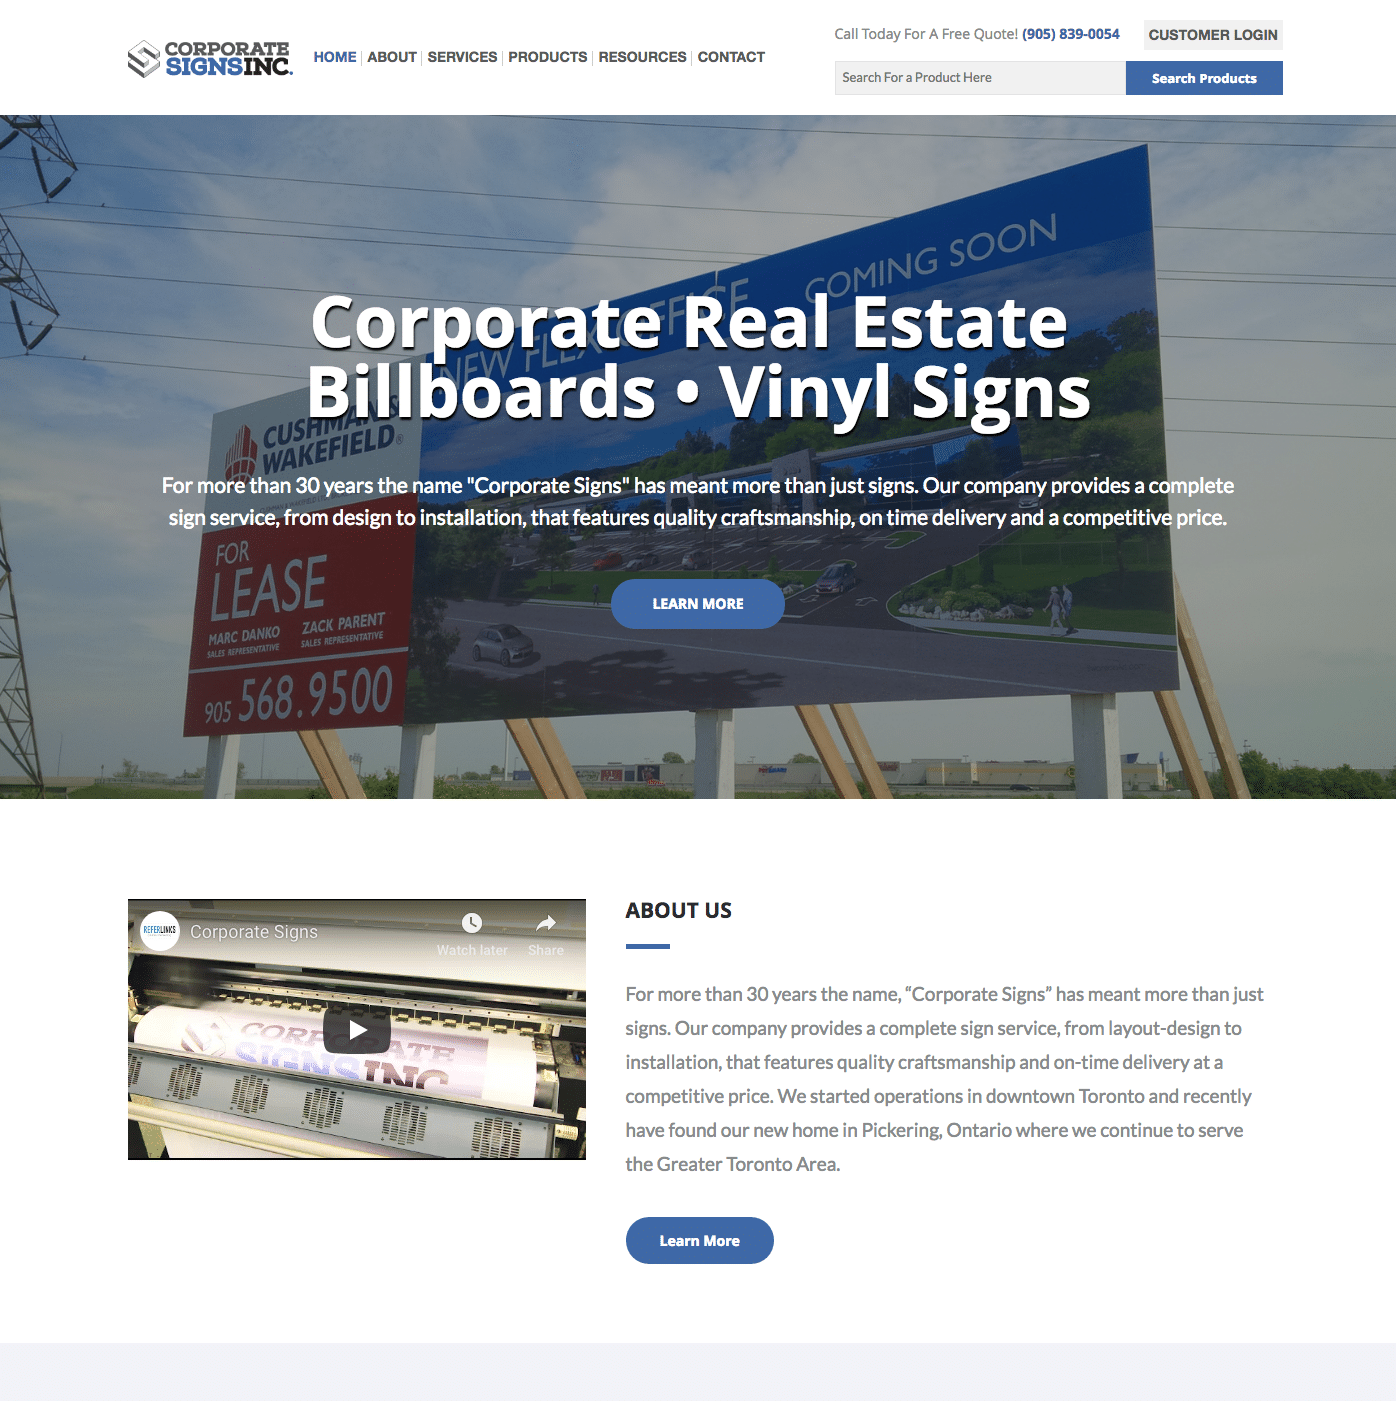 Corporate Signs